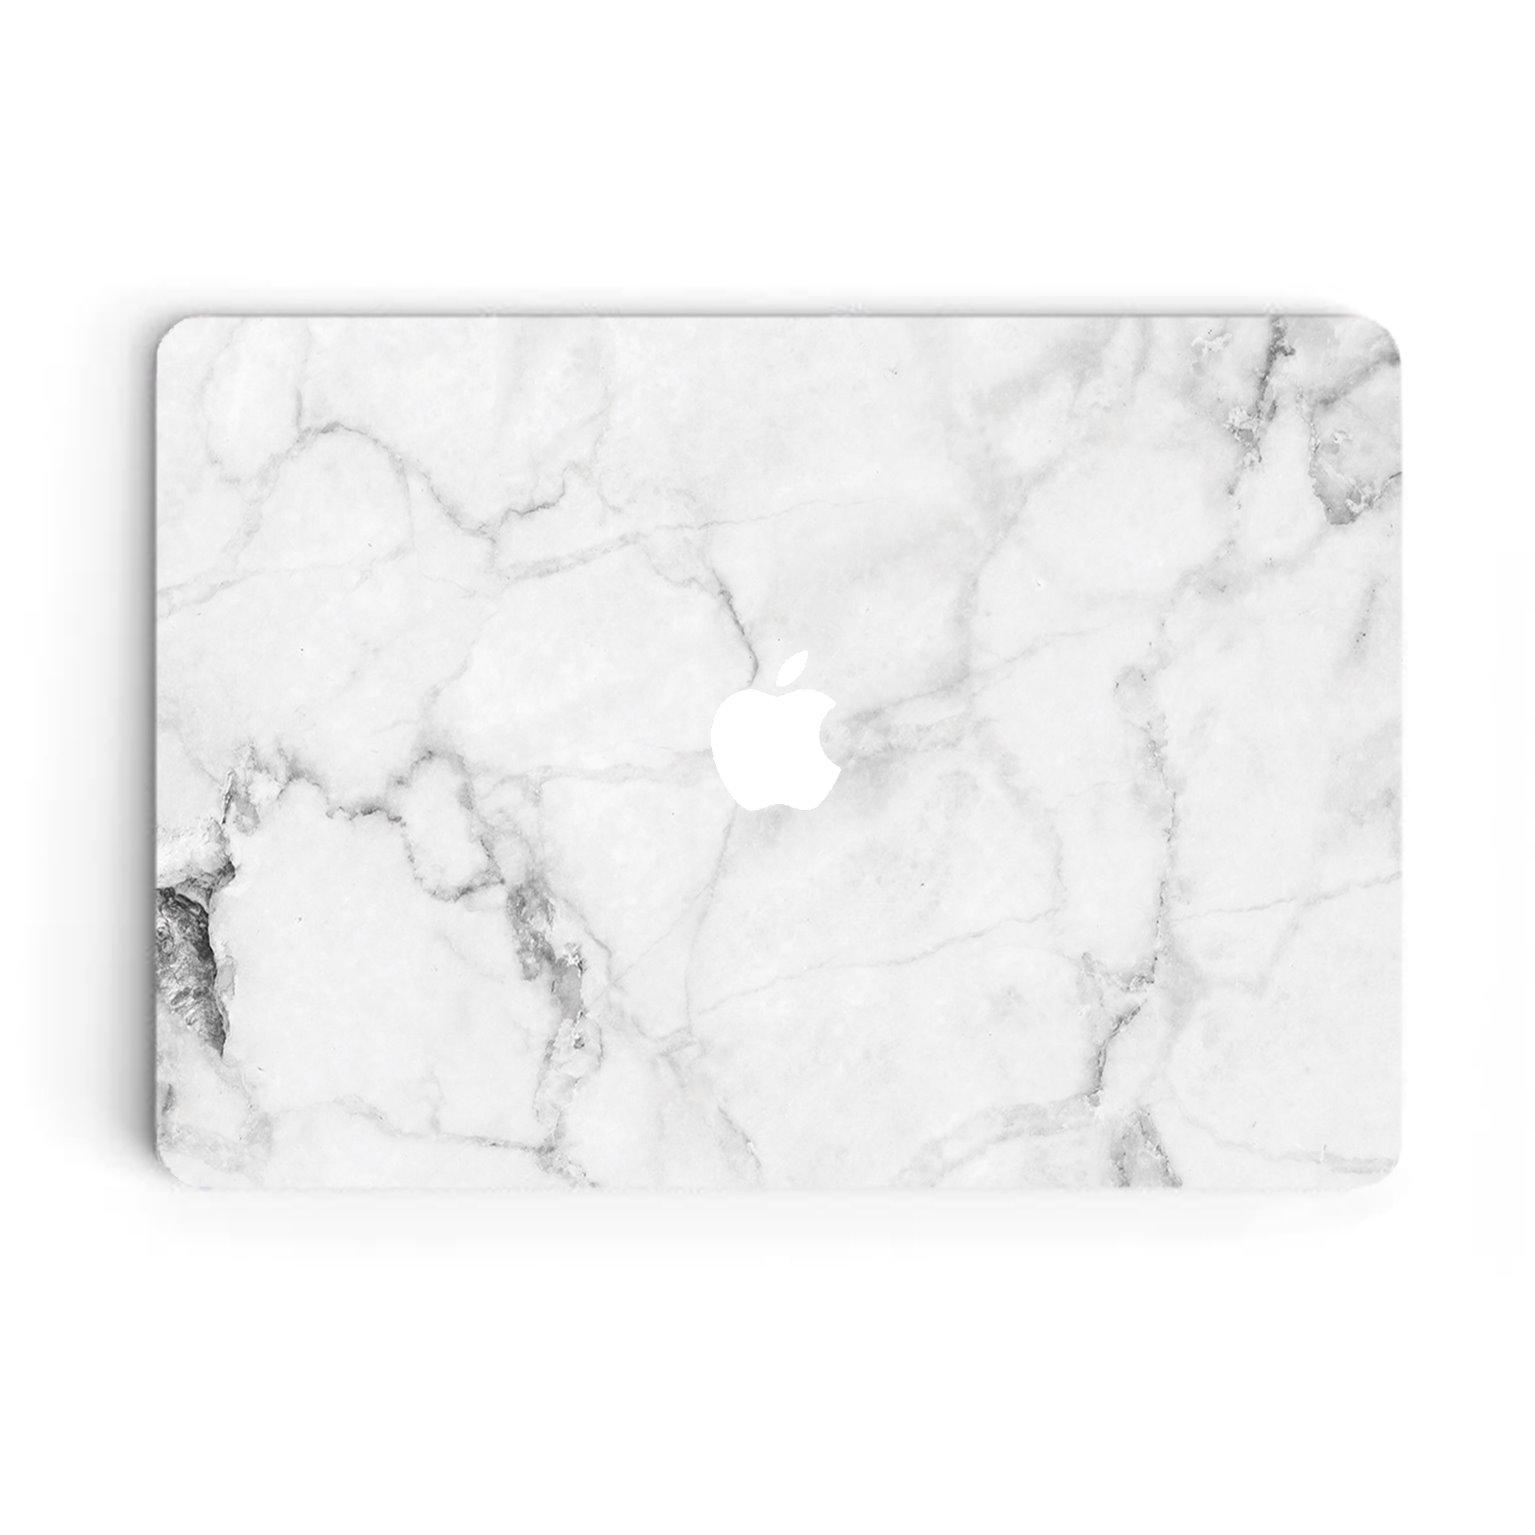 New Laptop Macbook Skin Sticker Decal Marble For Air 13 Inch Instock